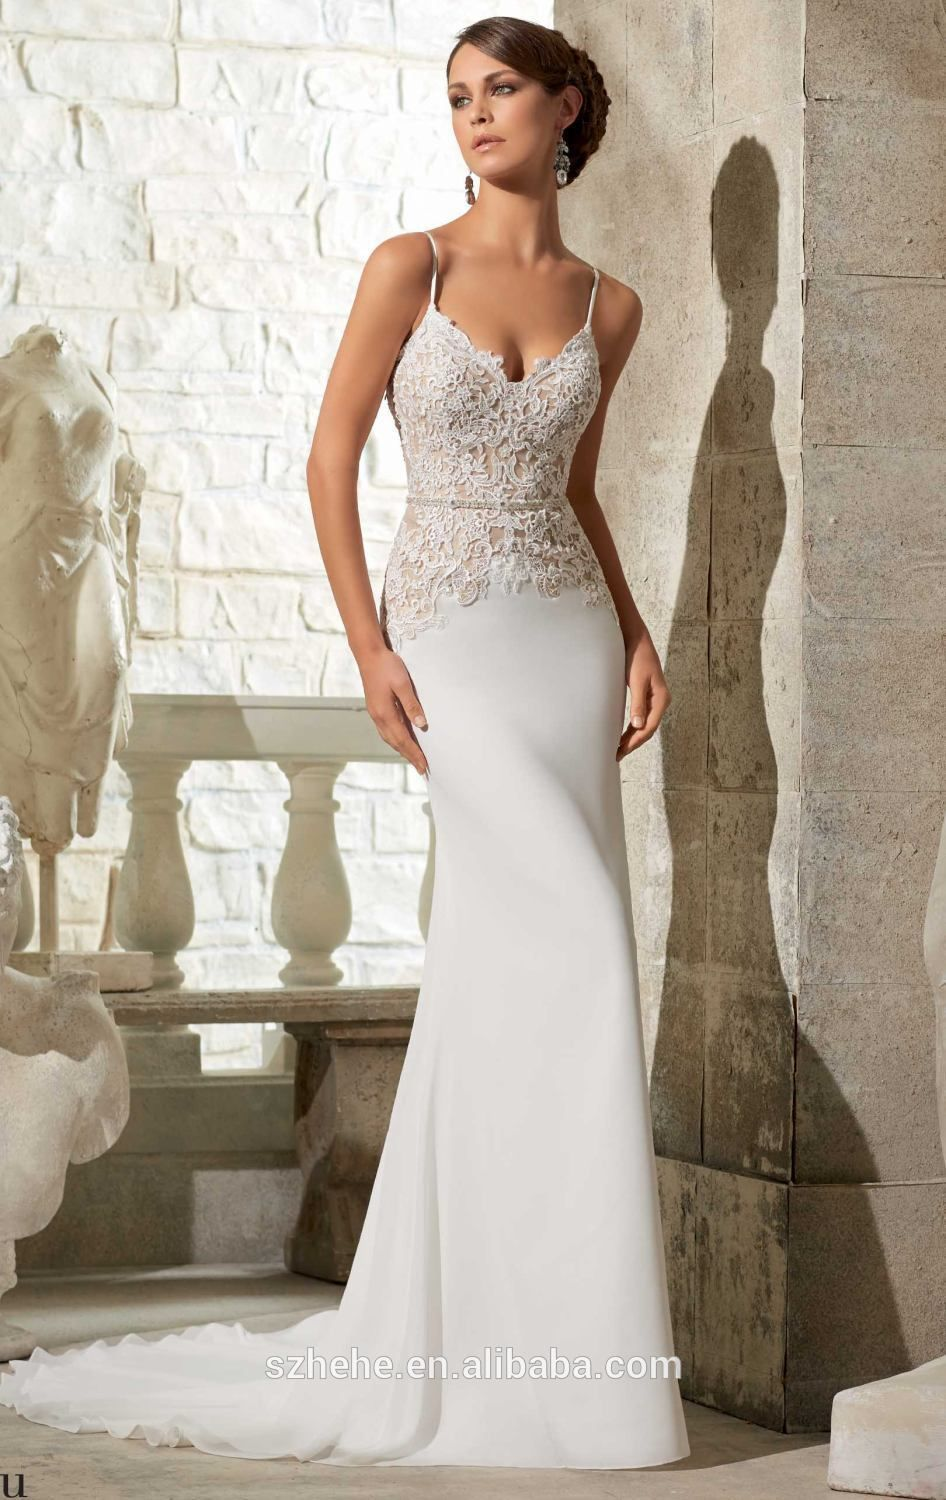 Spaghetti strap mermaid wedding dress  W Attractive lace top spaghetti straps mermaid chiffon casual